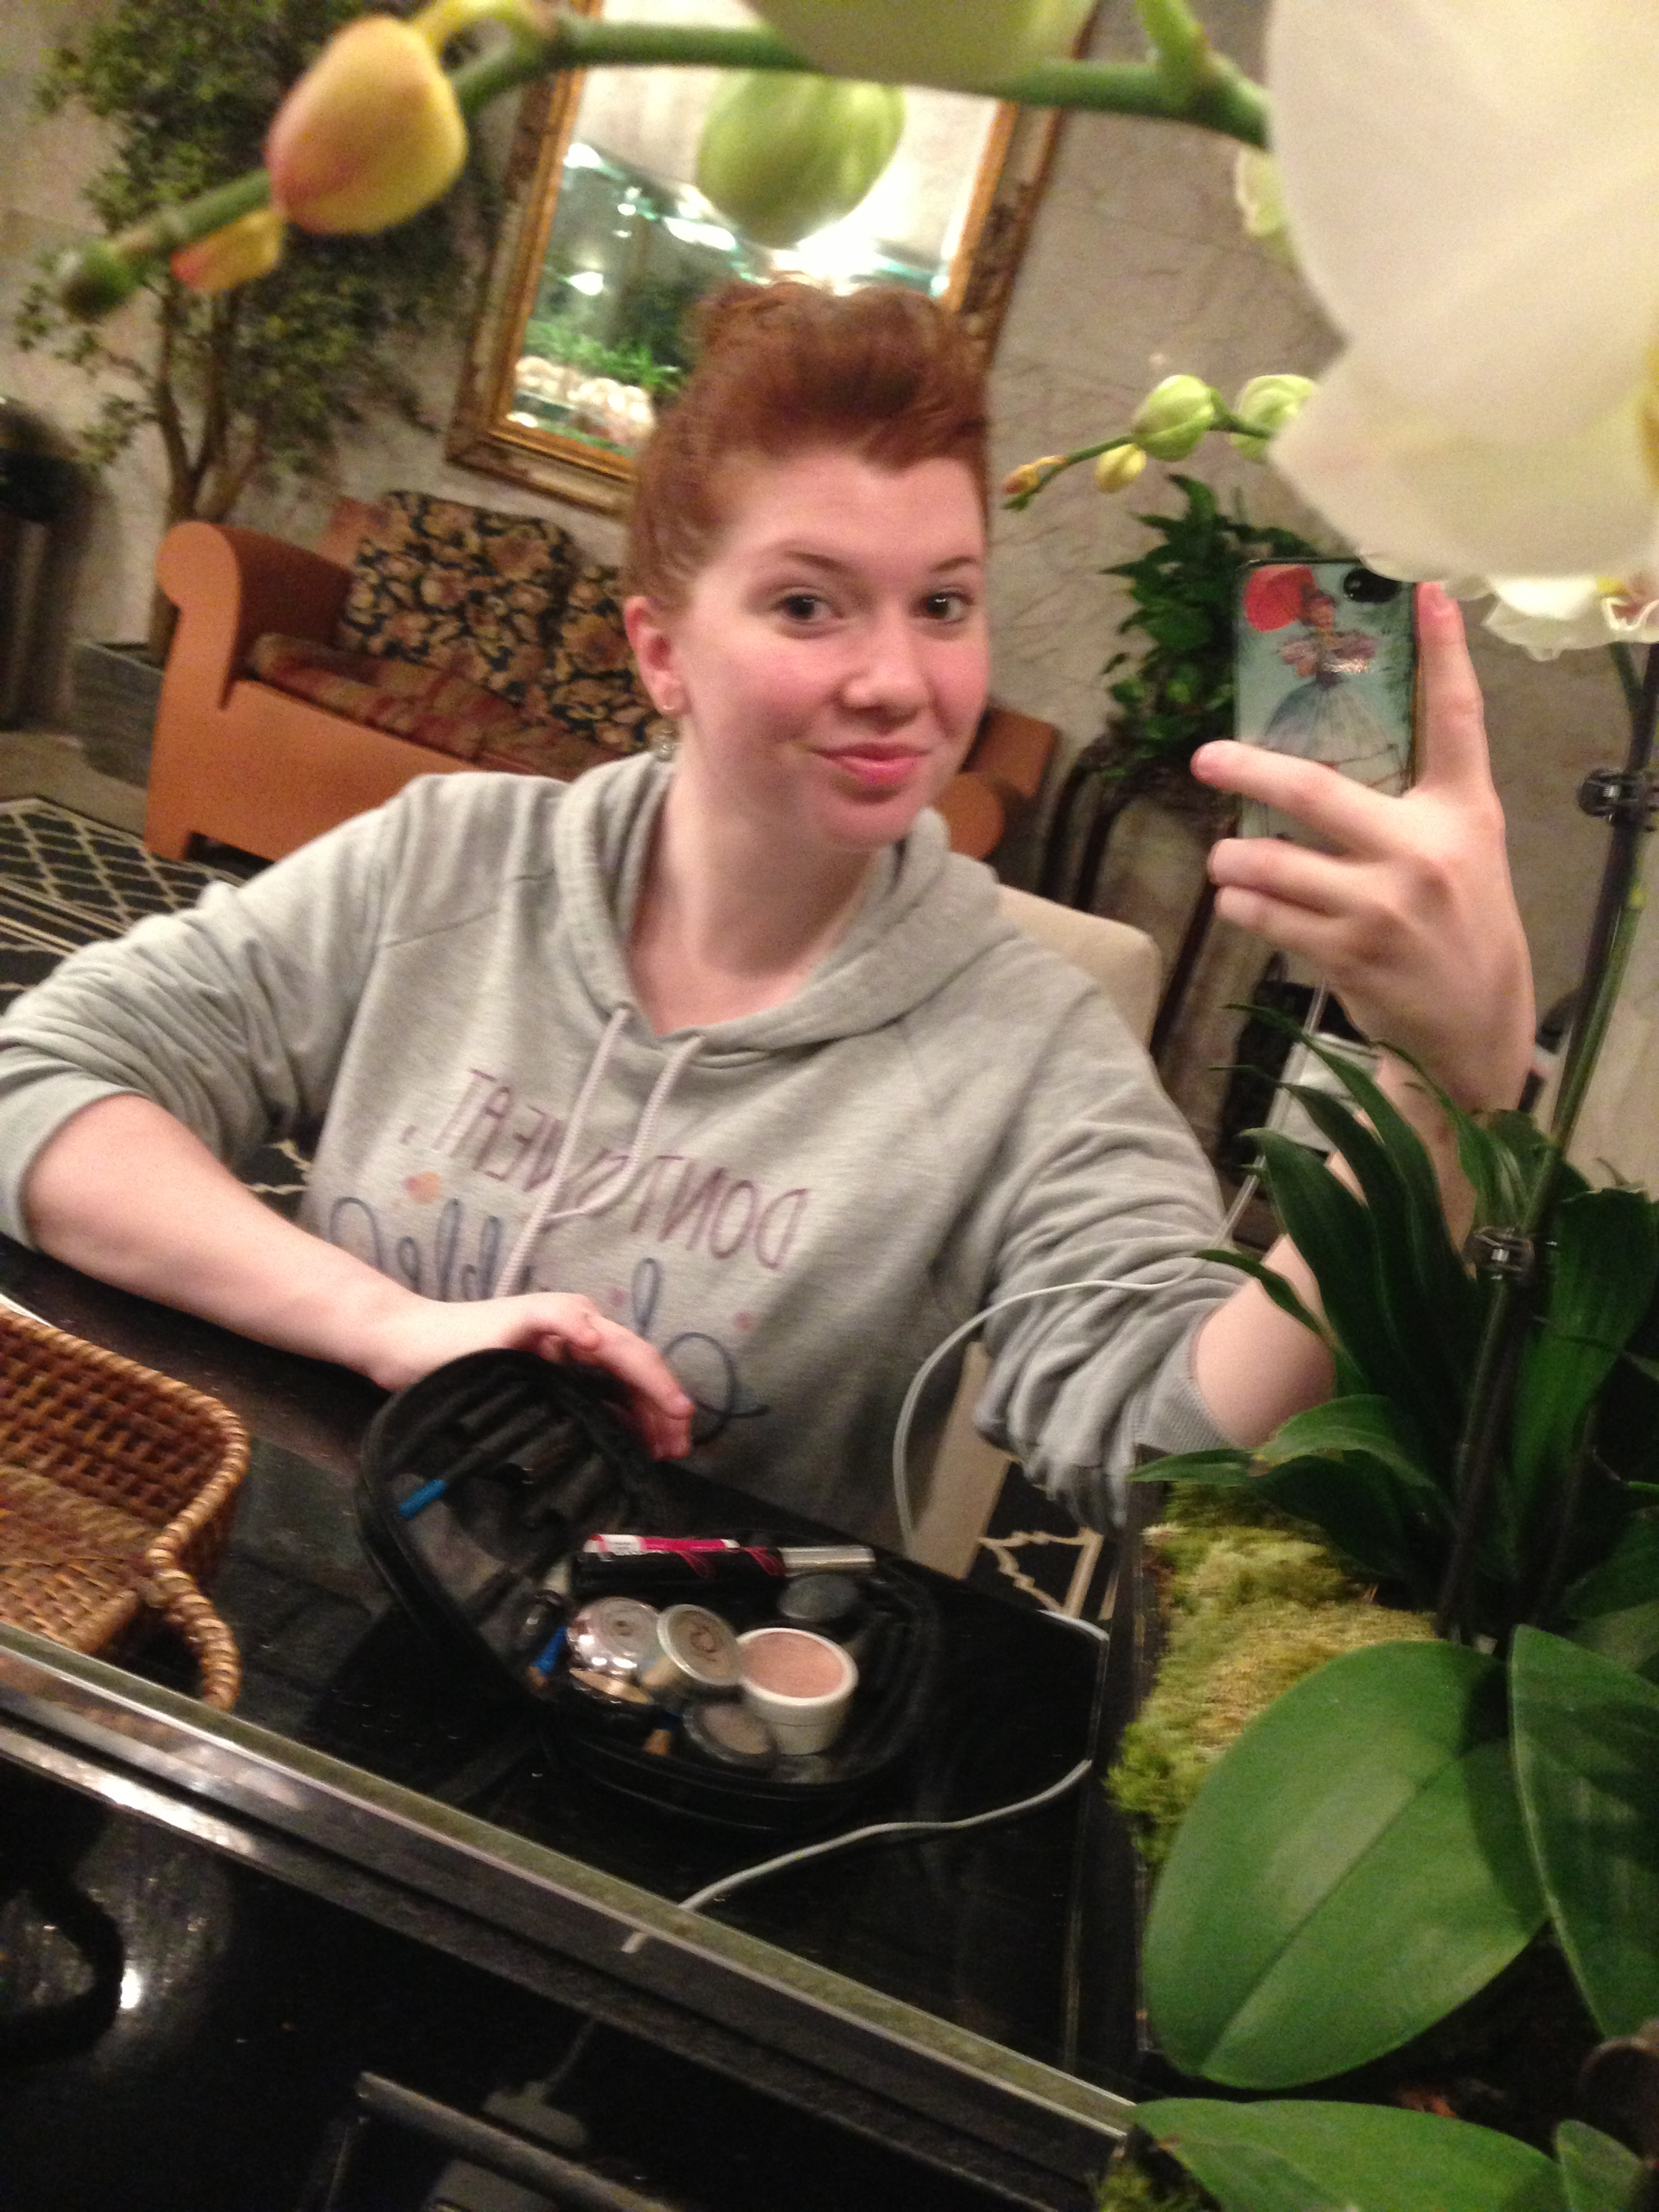 A makeupless me in the mirror in the primping parlour after my treatment. Beverly Hot Springs provides hair styling tools, q-tips, products and all kinds of fun complimentary goodies!